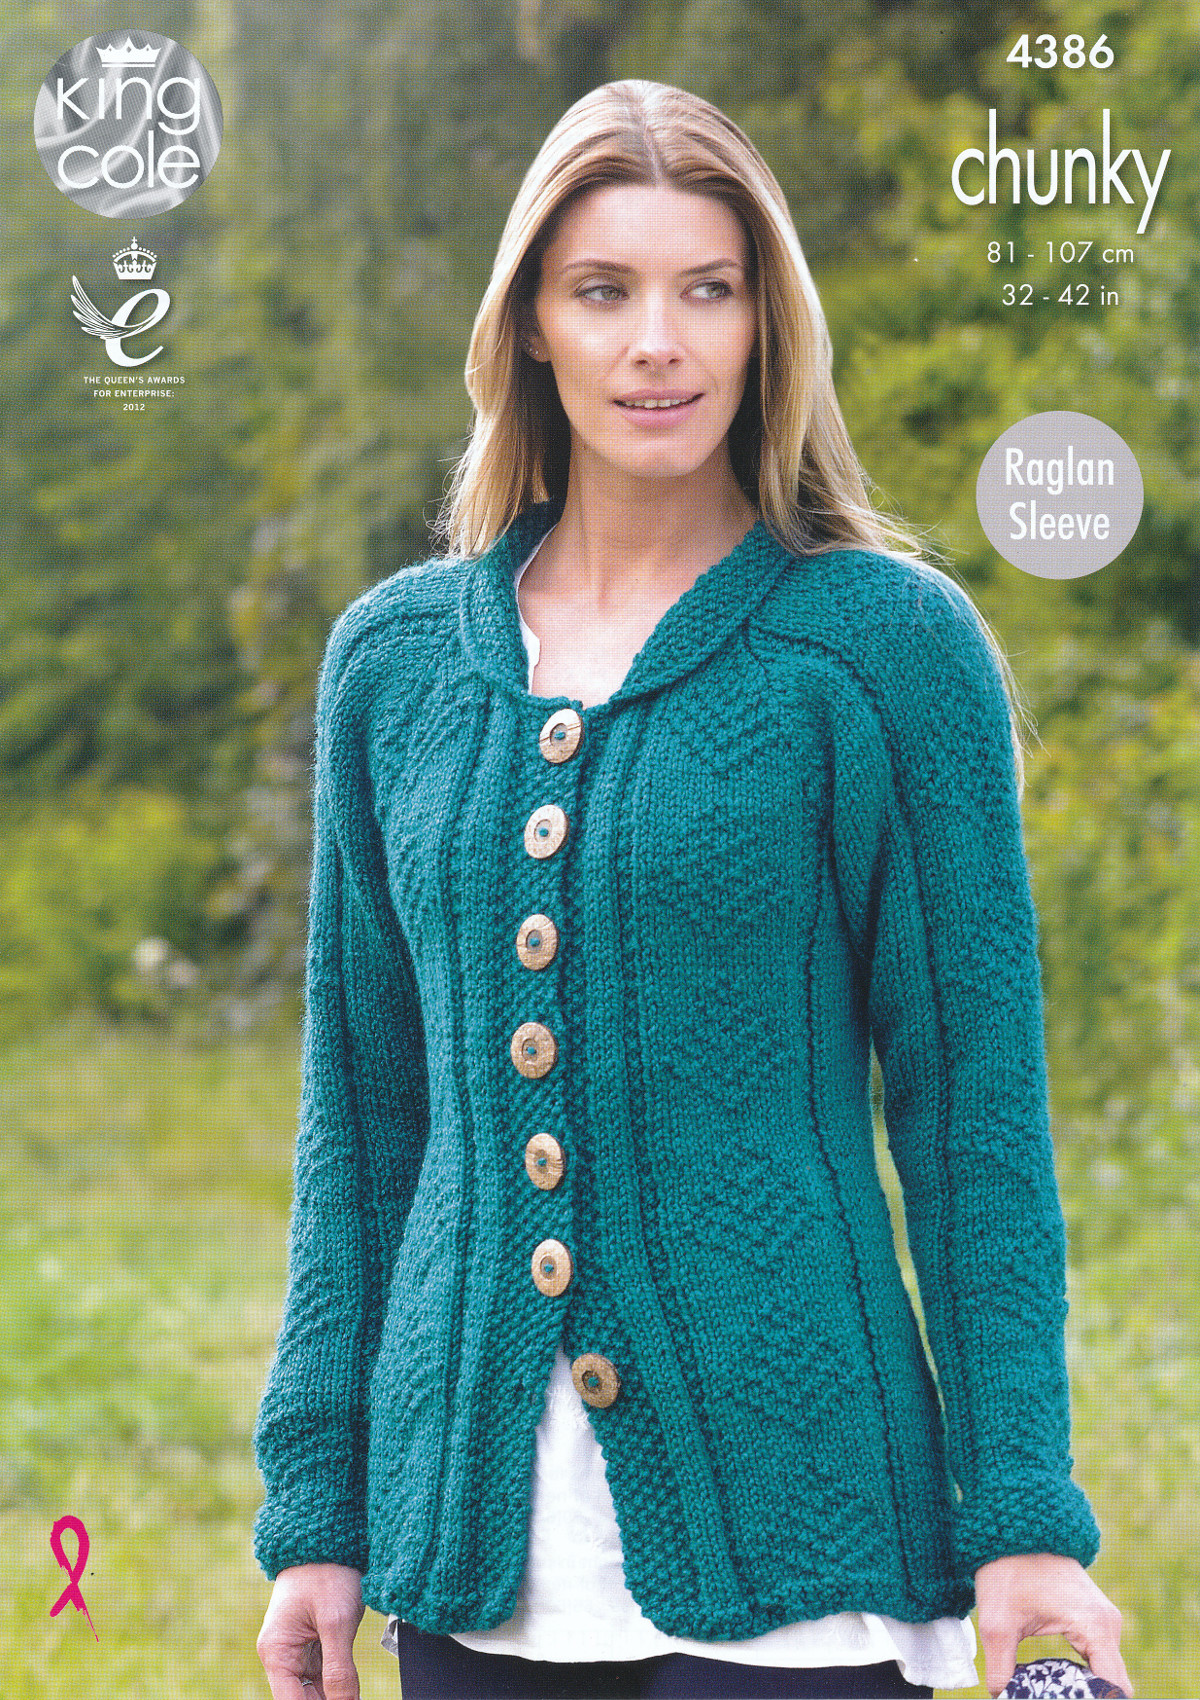 Chunky Cardigan Knitting Pattern : Ladies cardigan knitting pattern chunky full zip sweater